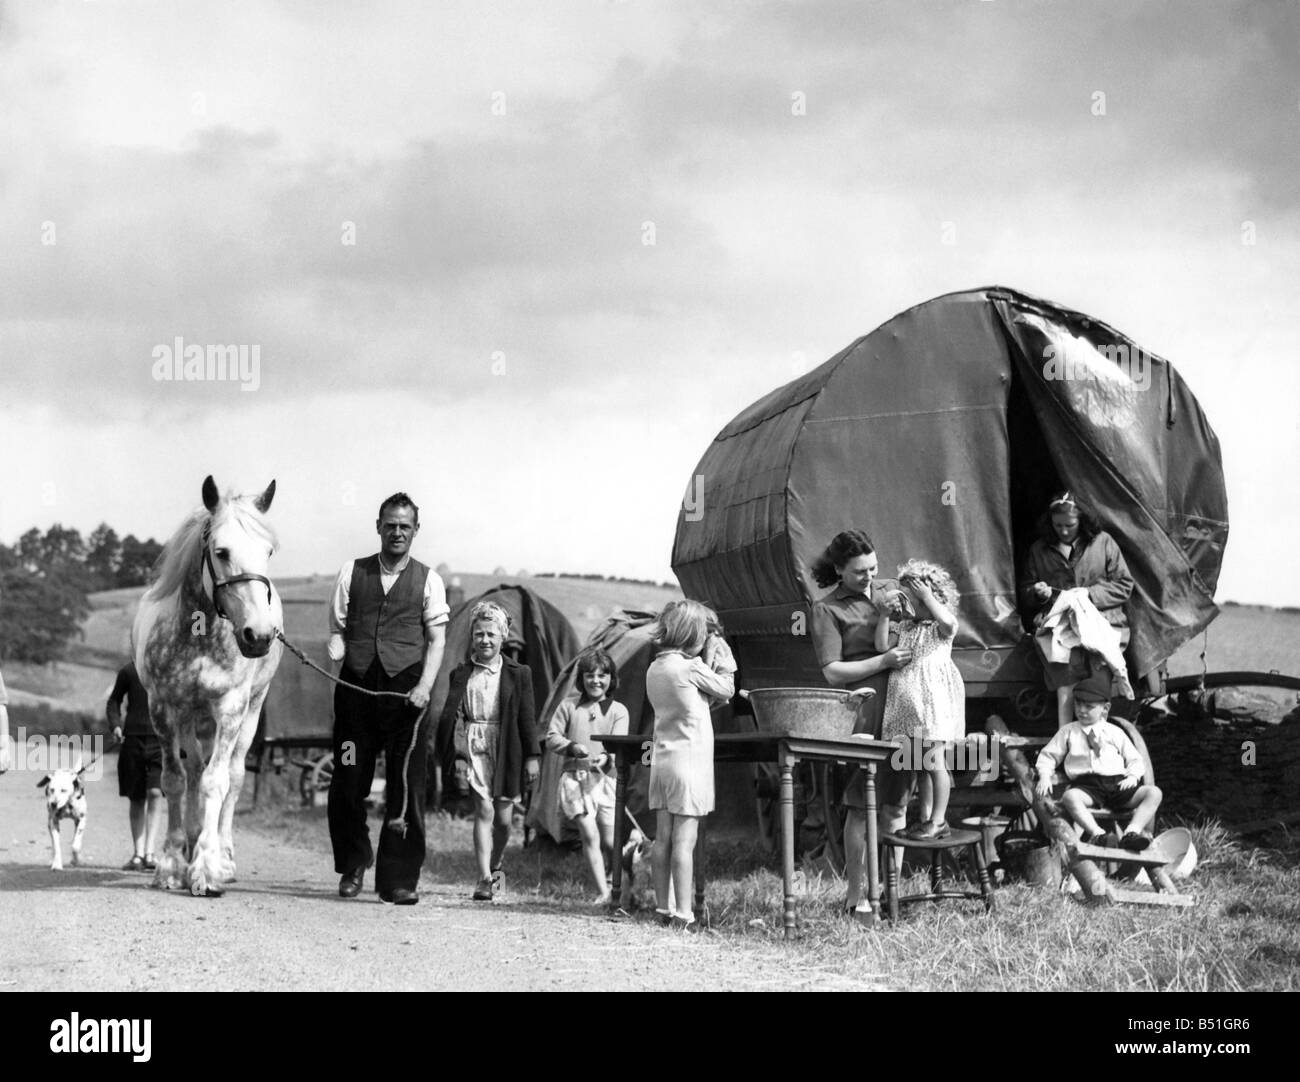 A gypsie caravan parked in a field is home to some of the evacuees who have fled London and the V1 flying bombs. - Stock Image